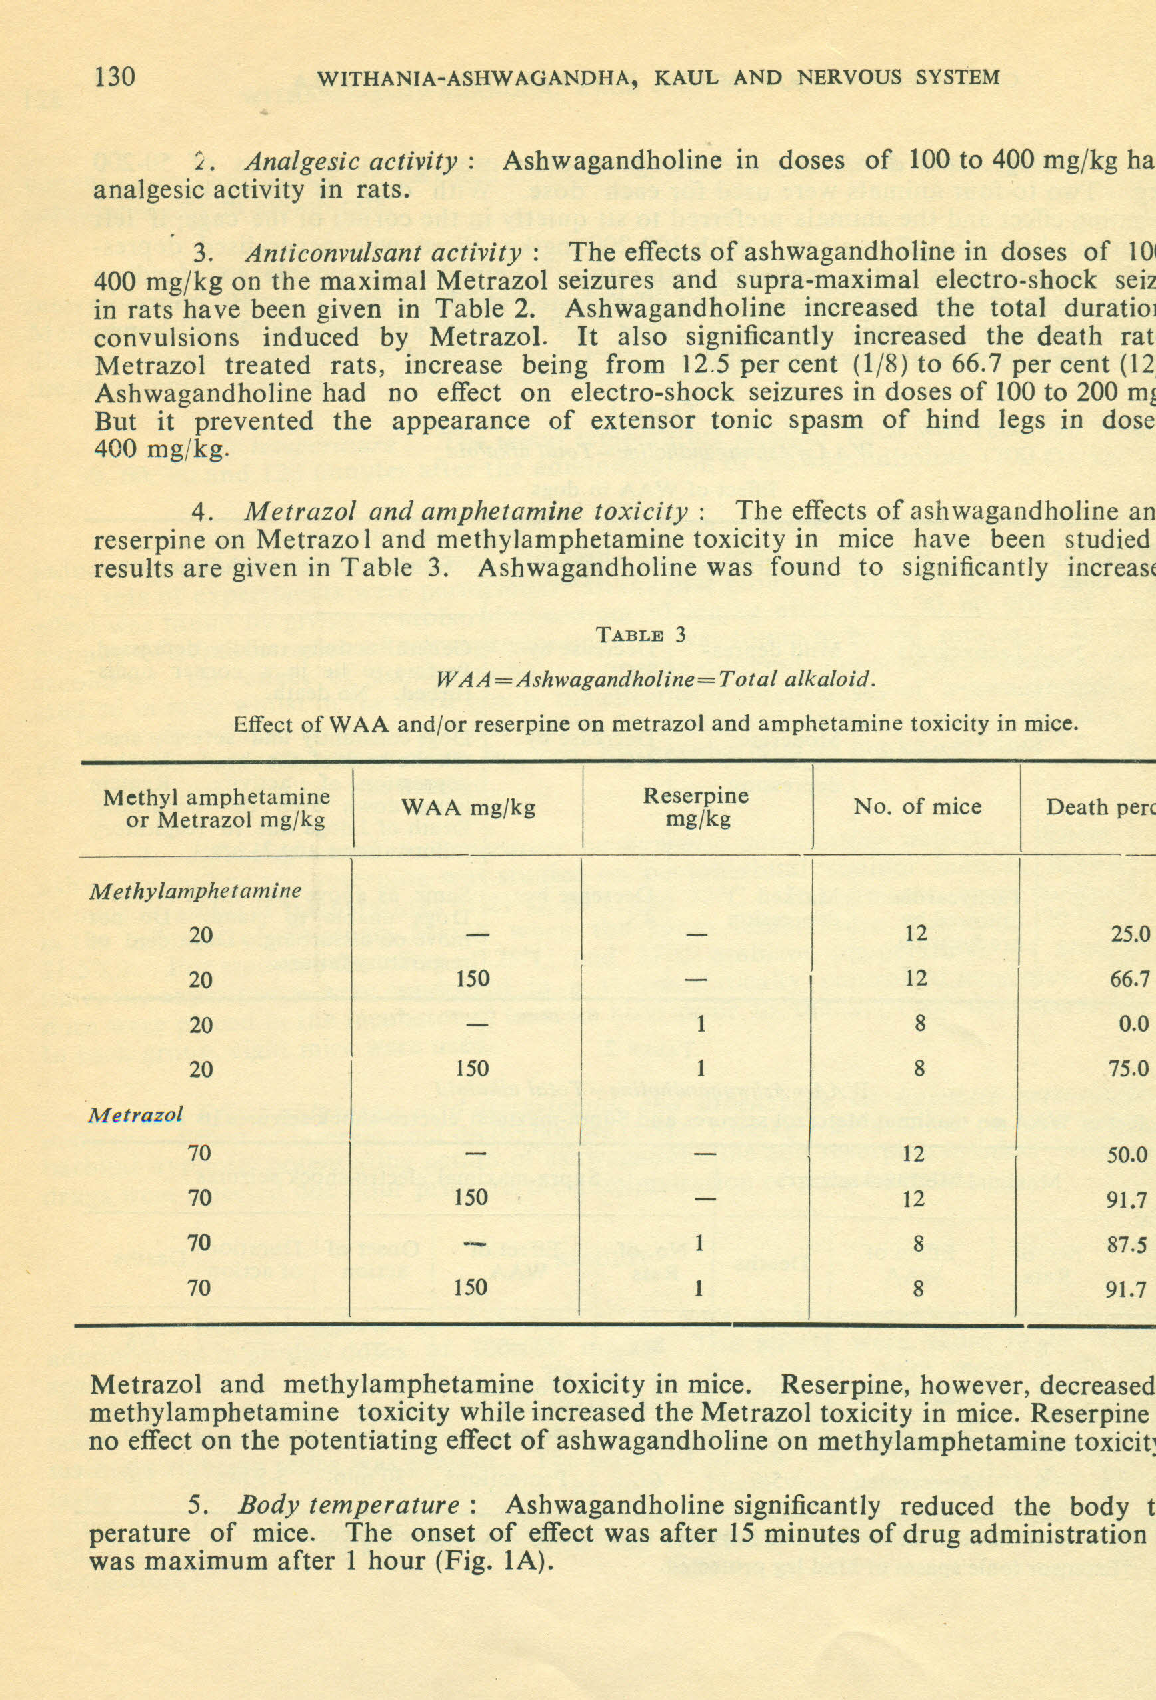 Table 3 from Studies on Withania-ashwagandha, Kaul  V  The